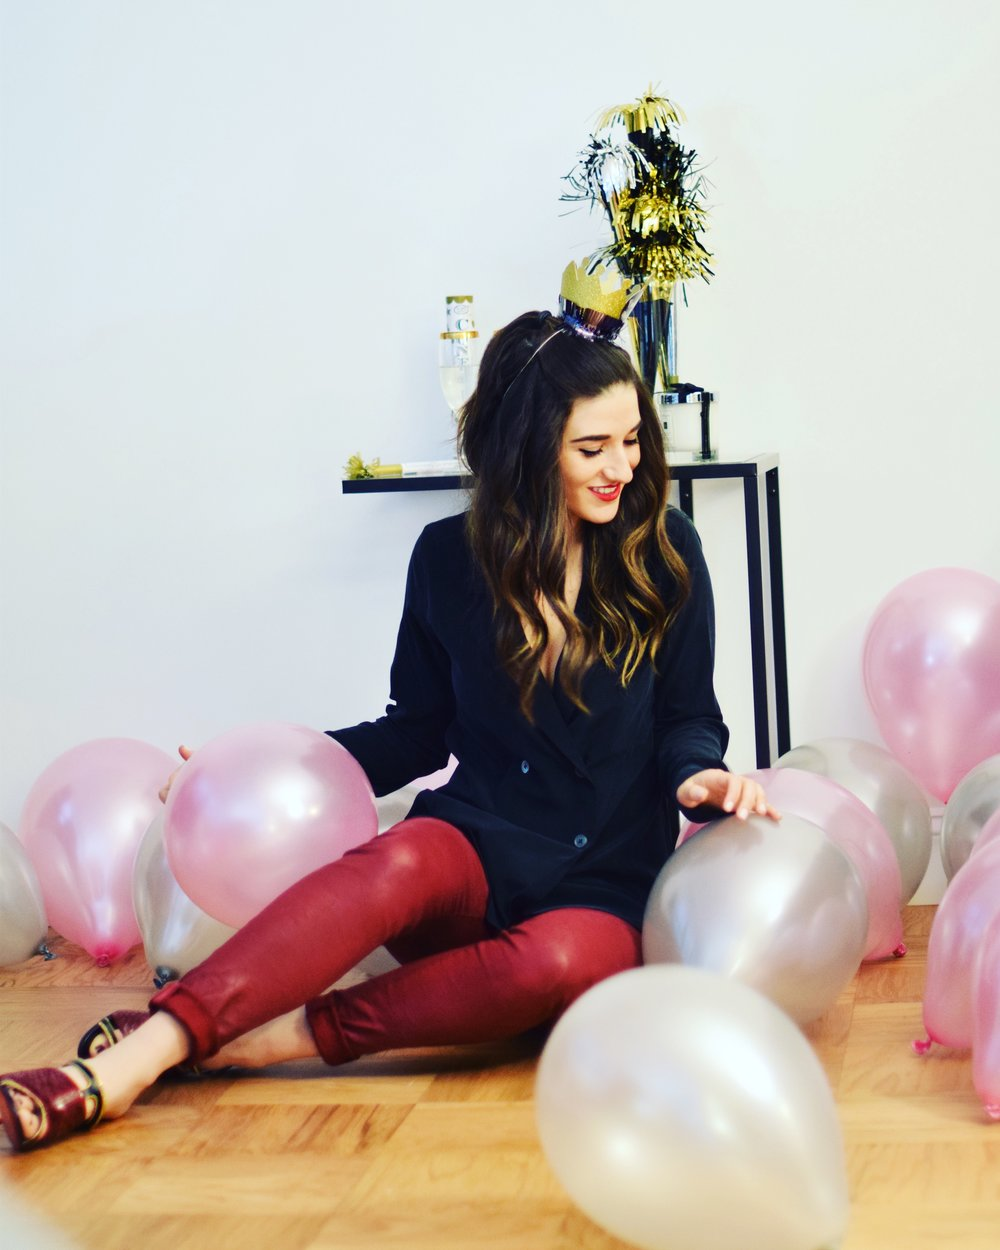 New Year New Direction Louboutins & Love Fashion Blog Esther Santer NYC Street Style Blogger Outfit OOTD Trendy 2017 NYE Resolution AG Jeans Christian Louboutin Mules Heels Shoes Red Soles Pants Black Top Pretty Wear Shop Celebration Balloons Girl Fun.JPG